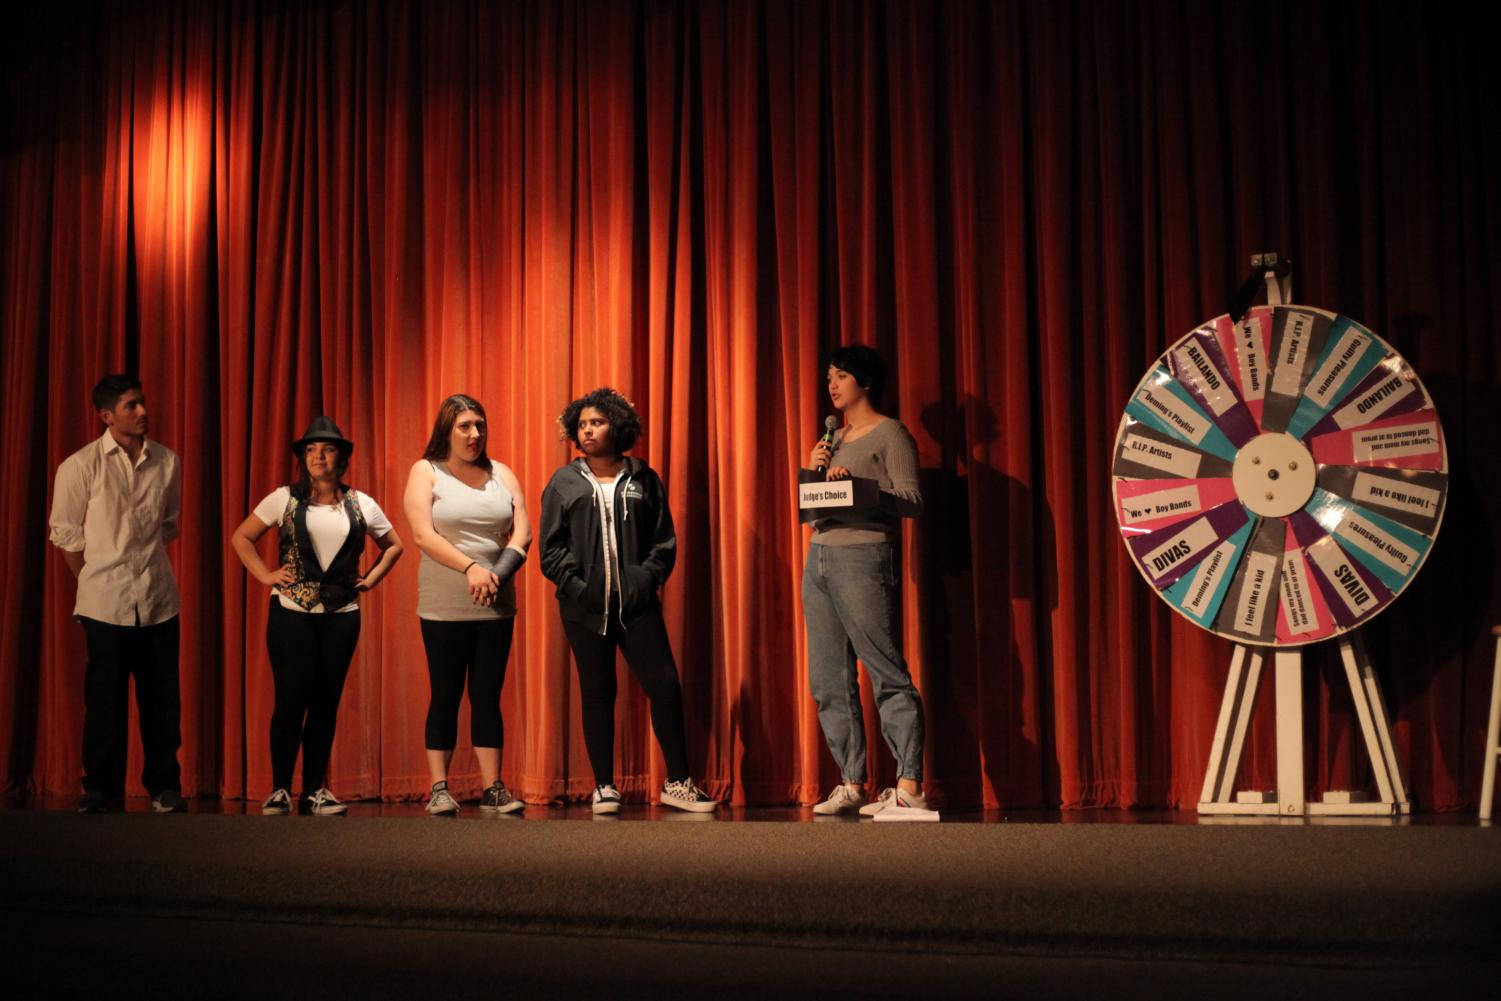 Team leaders (left to right) Jonathan, Dalia, Mikaela, and Olivia stand alongside MC Hailey. The four judges had to spin the wheel to determine what category they will perform.